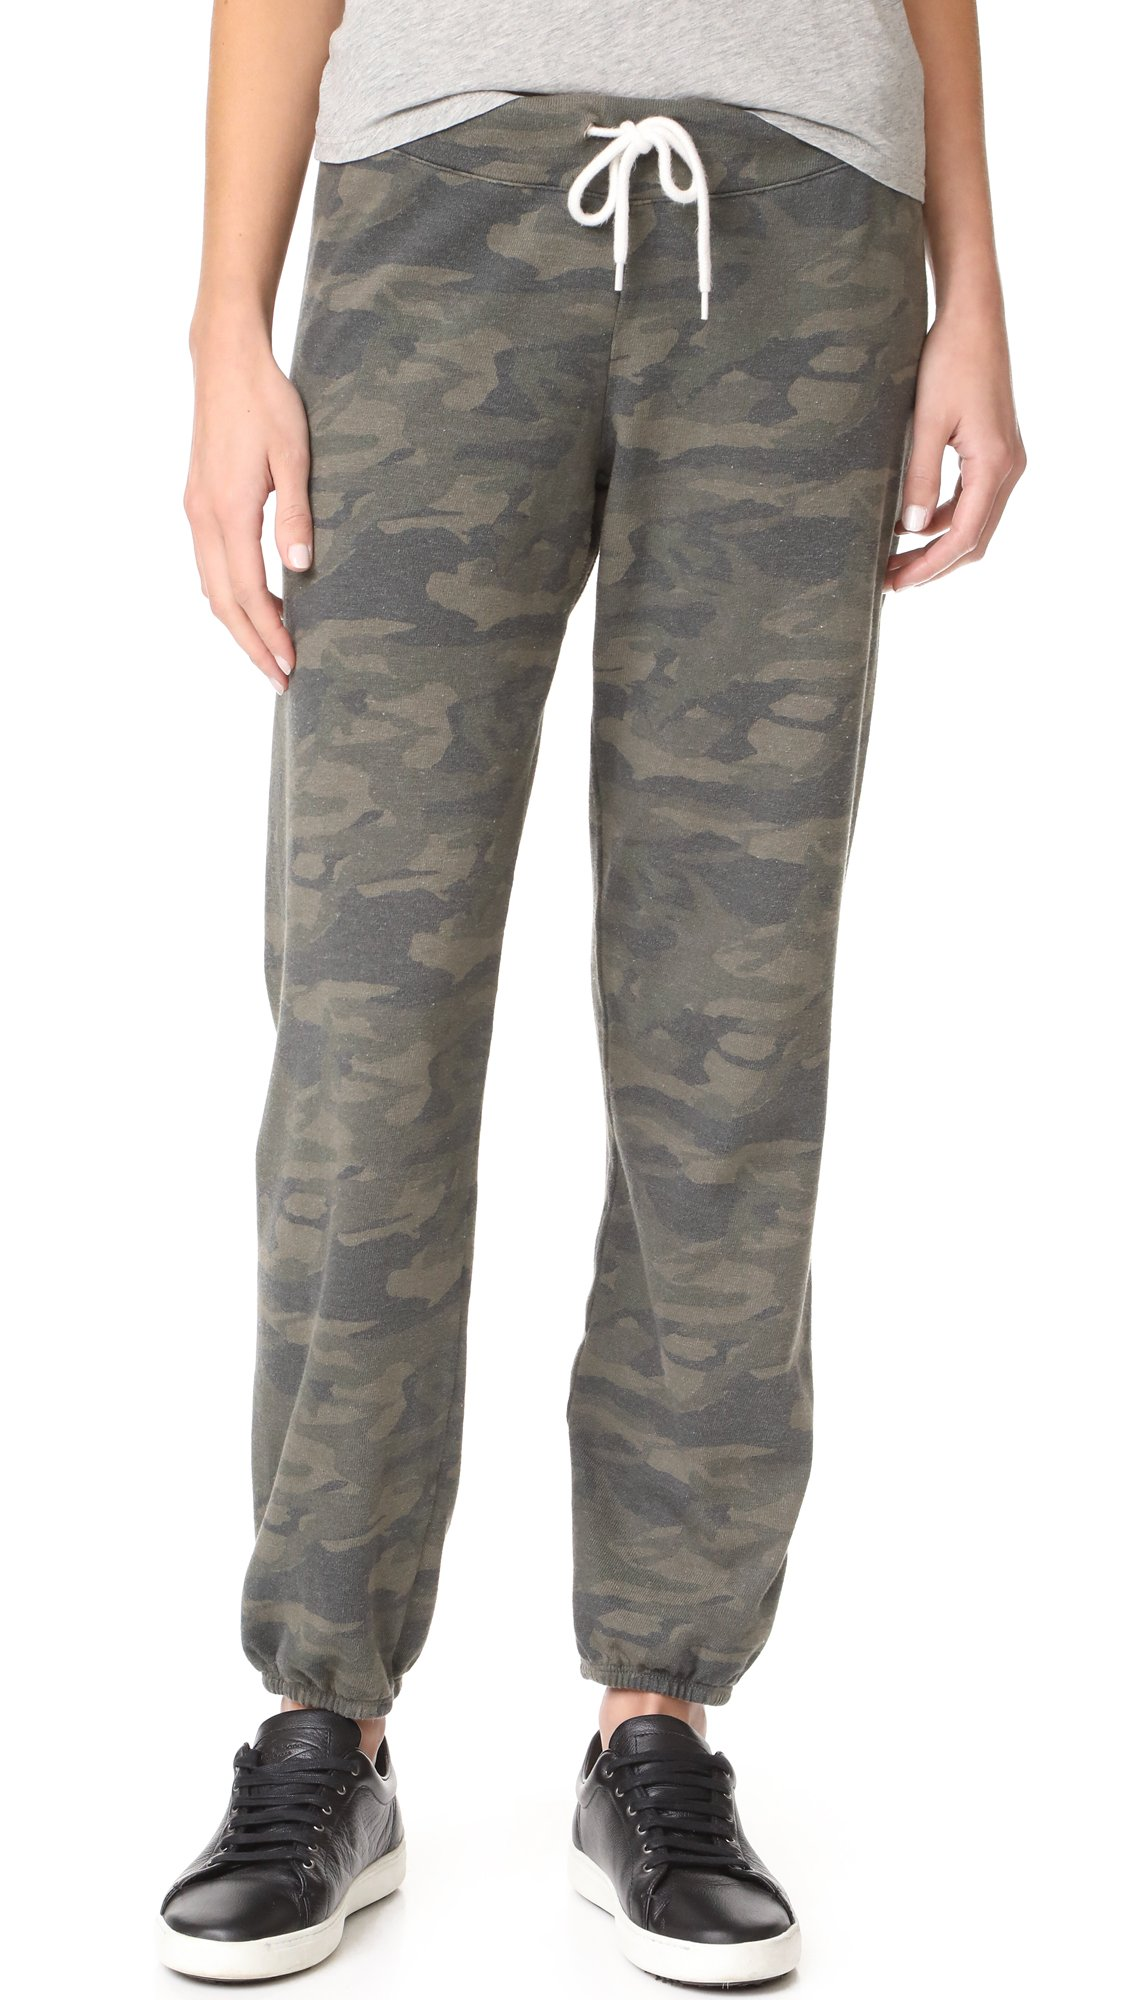 Monrow Women's Camo Print Sweatpants, Hunter, Large